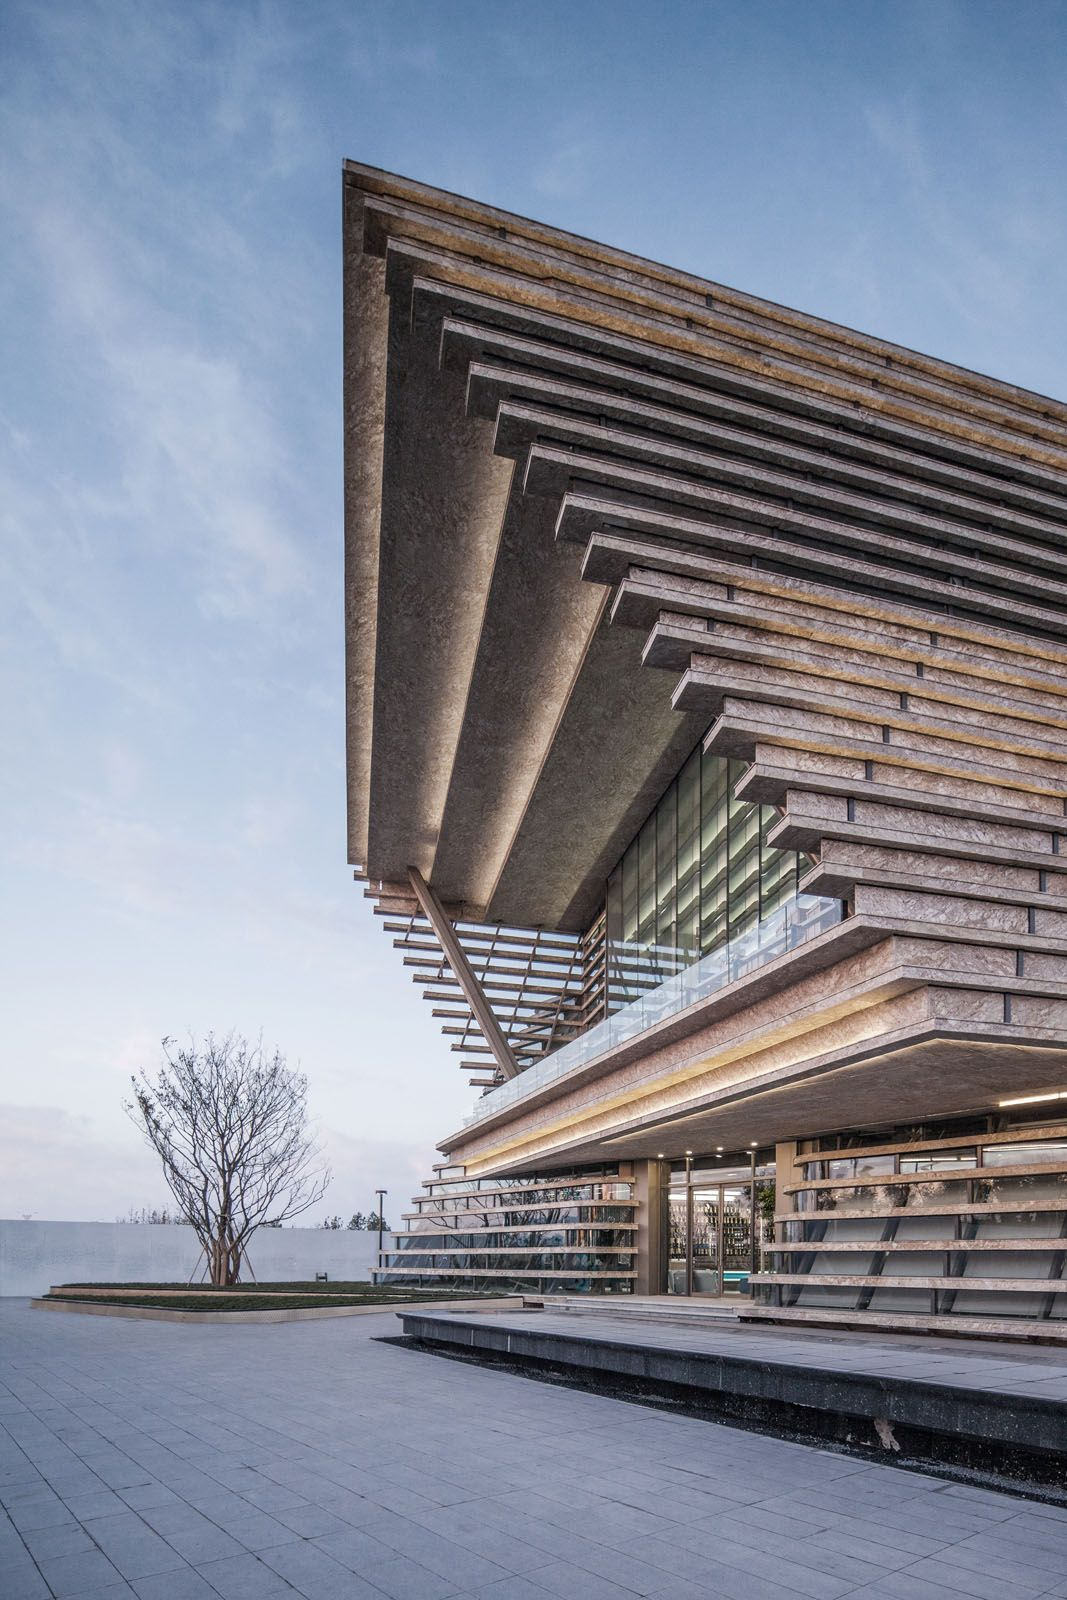 The Spiritual Bay Pavilion in Qingdao elegantly tilts 27 degrees to accord the upper levels spectacular sea views